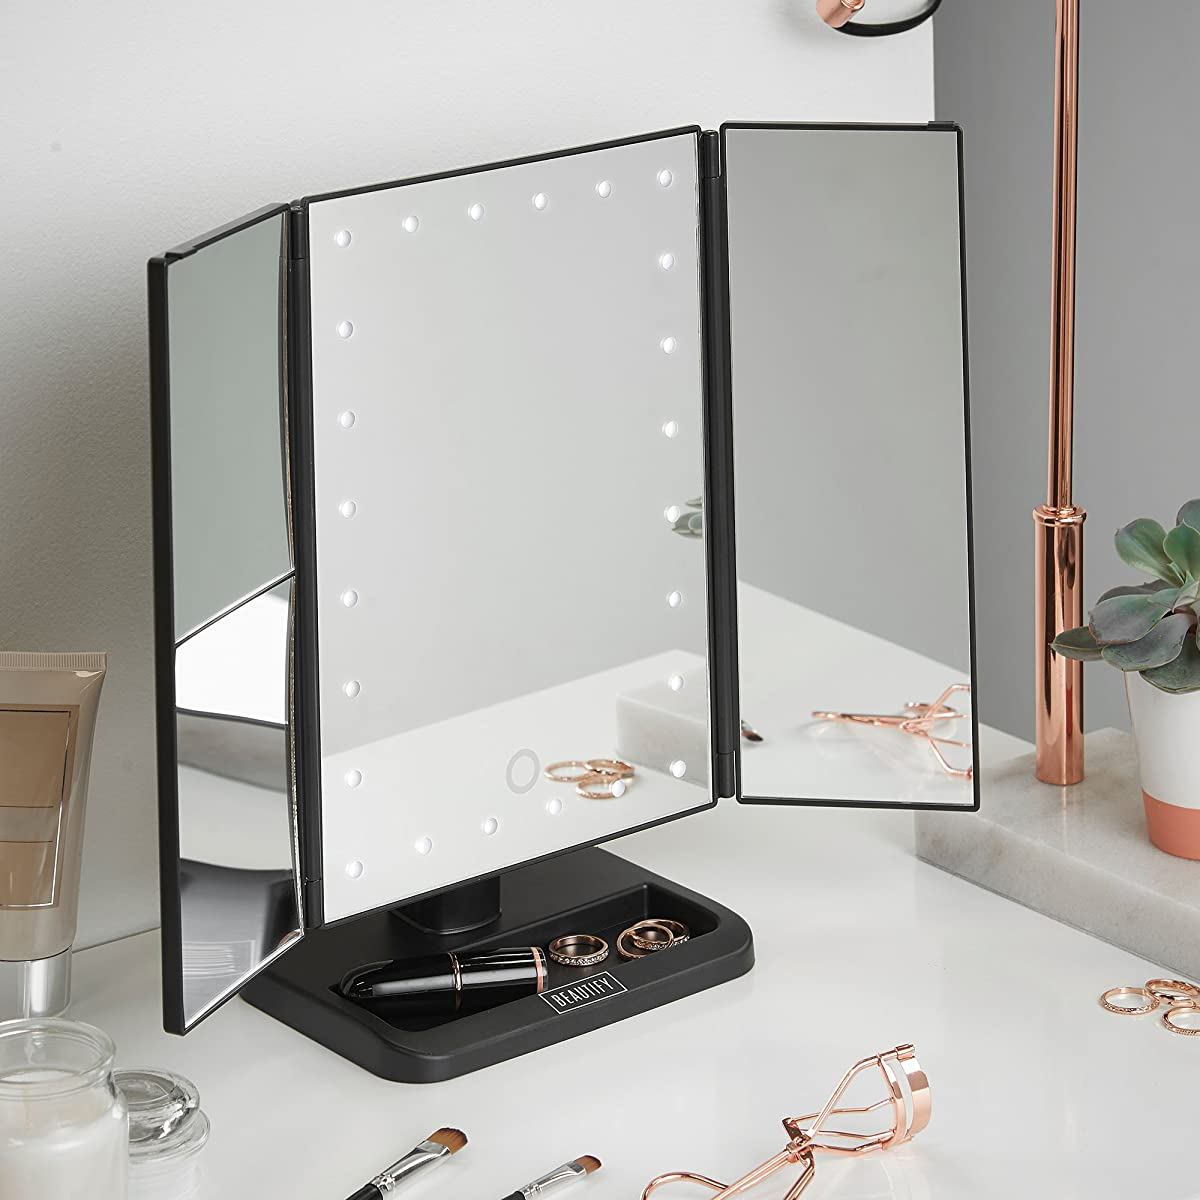 Beautify Vanity Makeup Trifold Mirror 24 LED Lighted with Touch Screen Dimming, 180° Rotation, USB and Battery Powered Countertop Cosmetic Mirror - Black Trifold